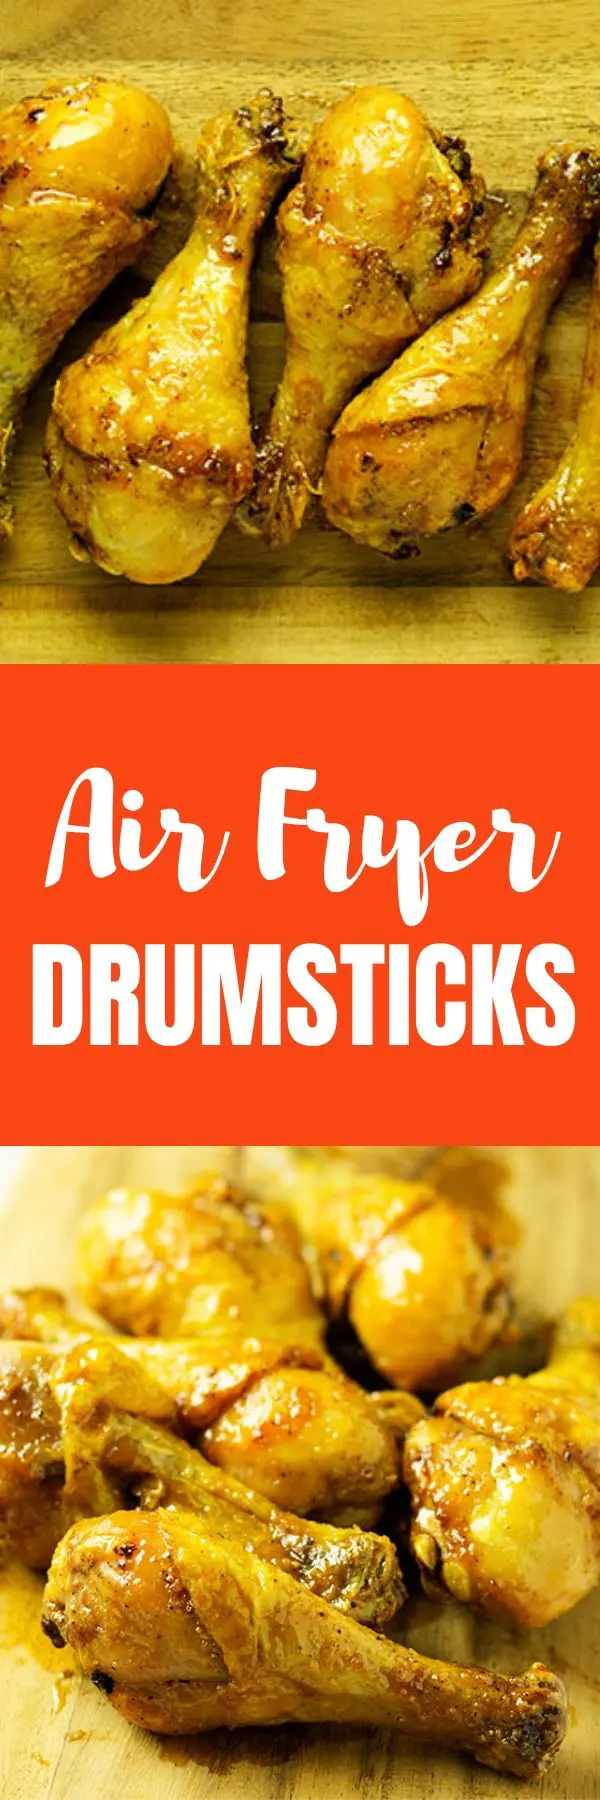 Air Fryer Drumsticks With No Breading In 25 Mins [Step By